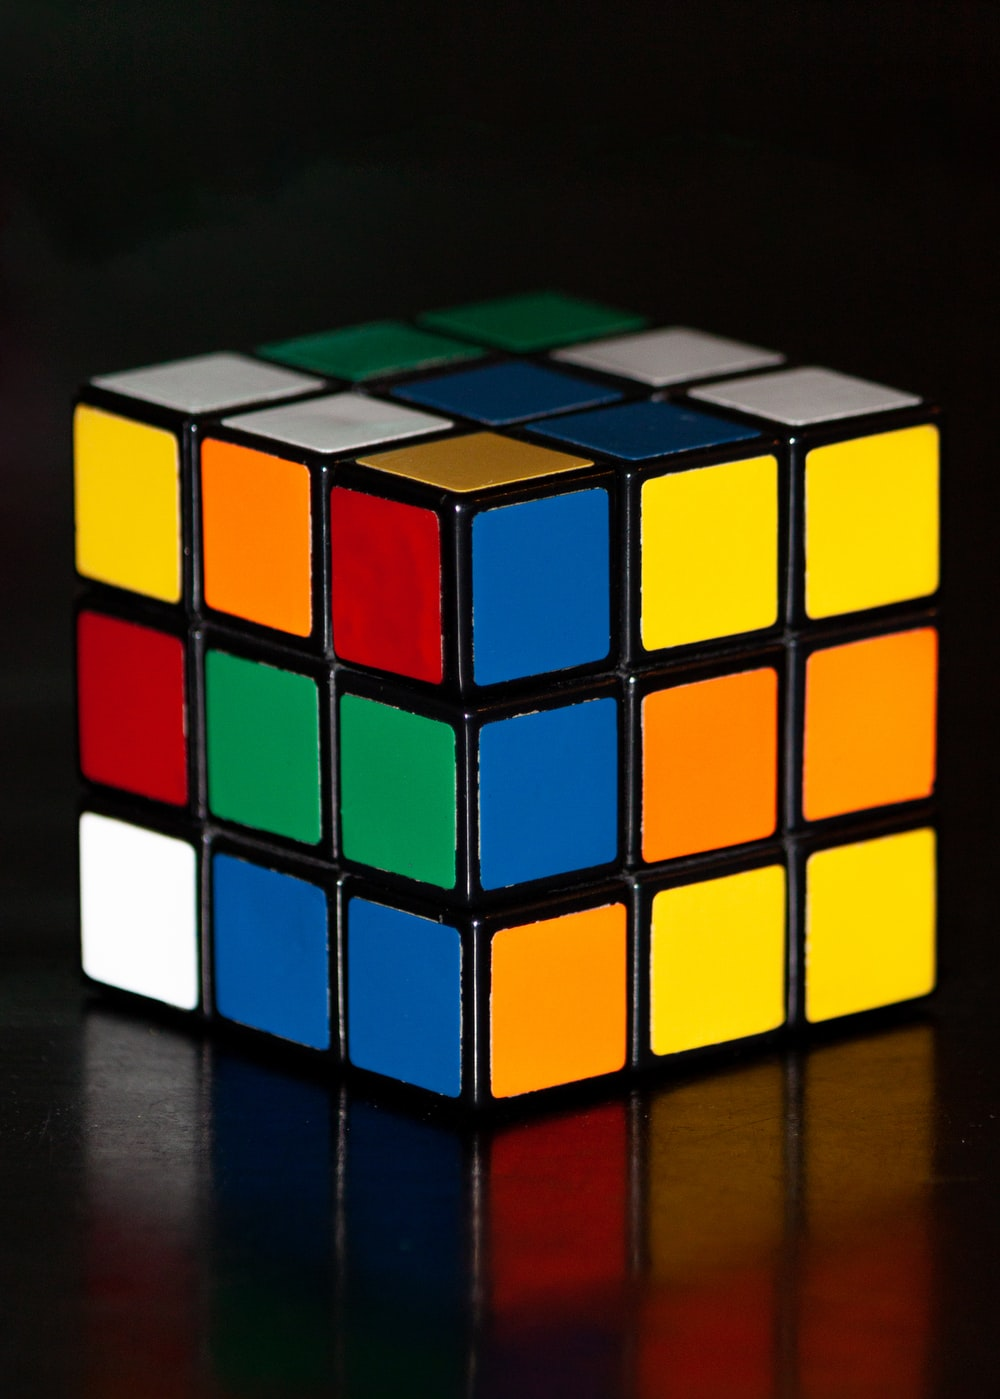 3 x 3 Rubik's Cube on black surface